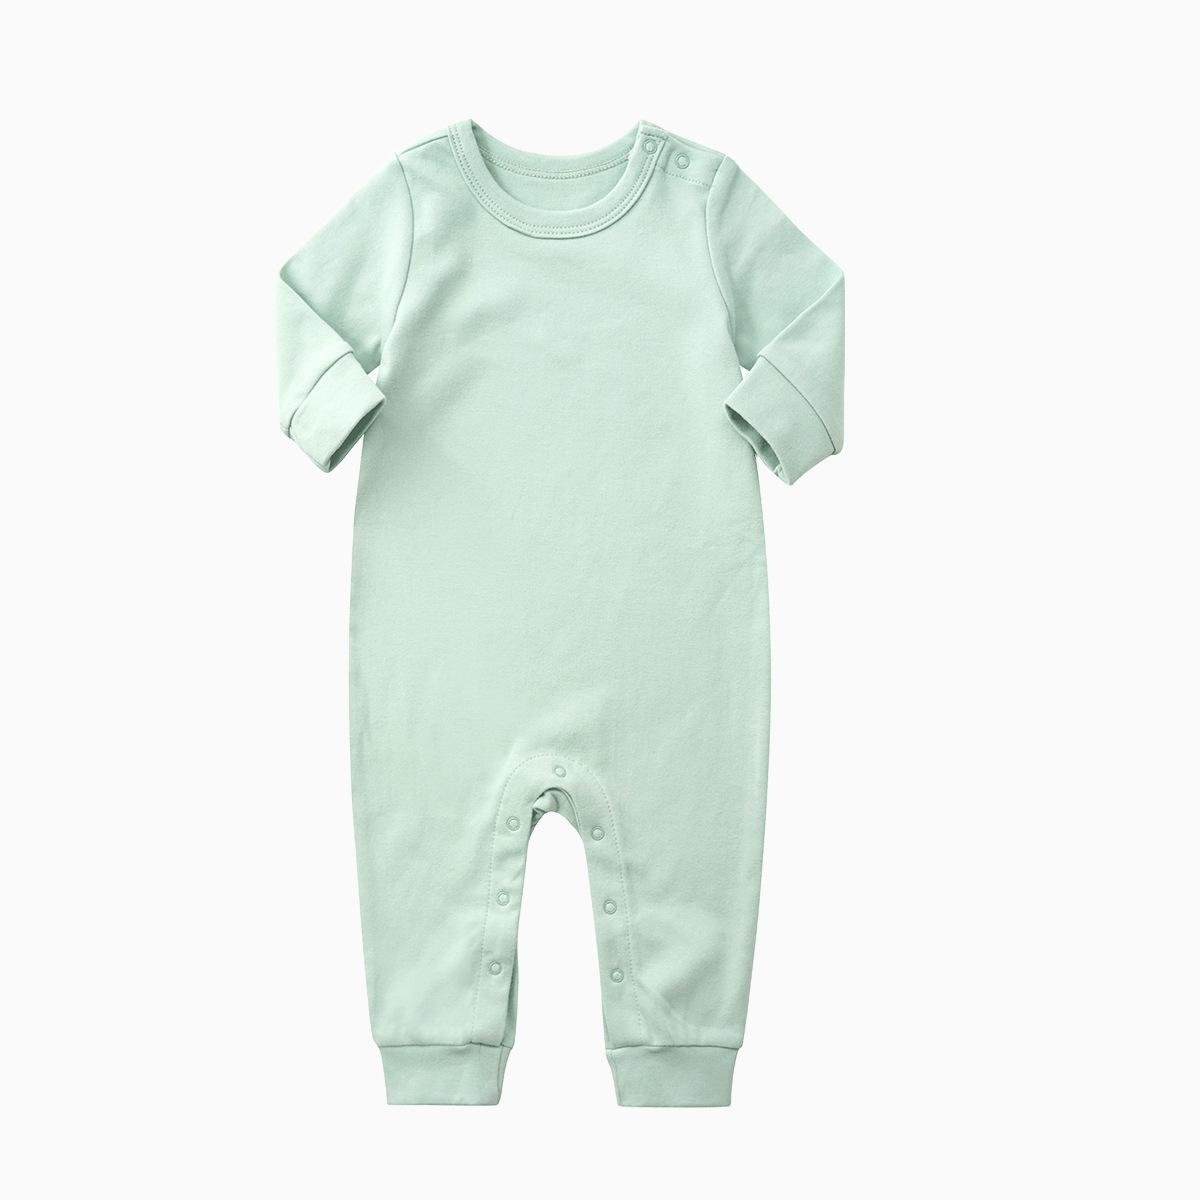 Orangemom 2018 Baby Clothes high quality organic Cotton Romper Long Sleeve Jumpsuit 100% cotton baby girl clothing for newborn orangemom brand summer spring baby romper long sleeves 100